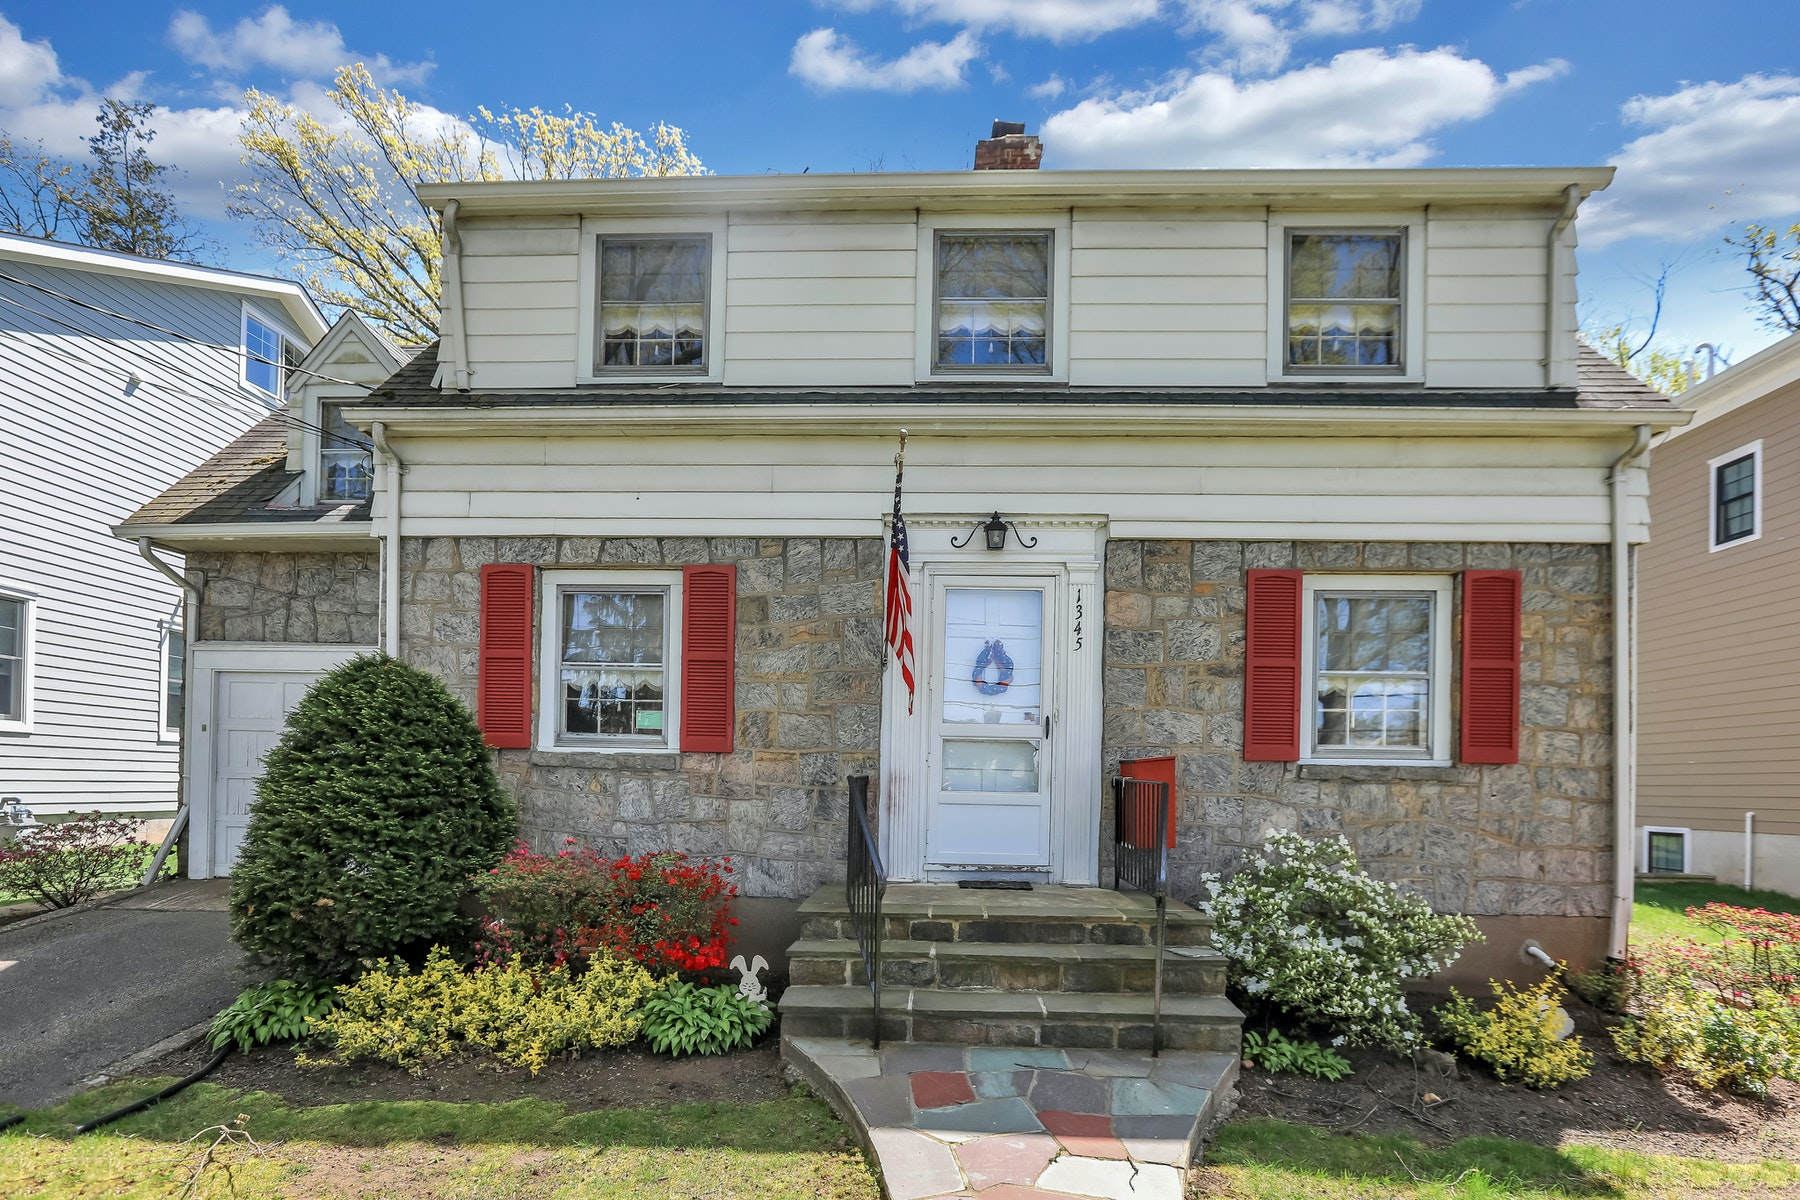 Single Family Homes for Sale at Excellent Location 1345 Somerset Rd. Teaneck, New Jersey 07666 United States